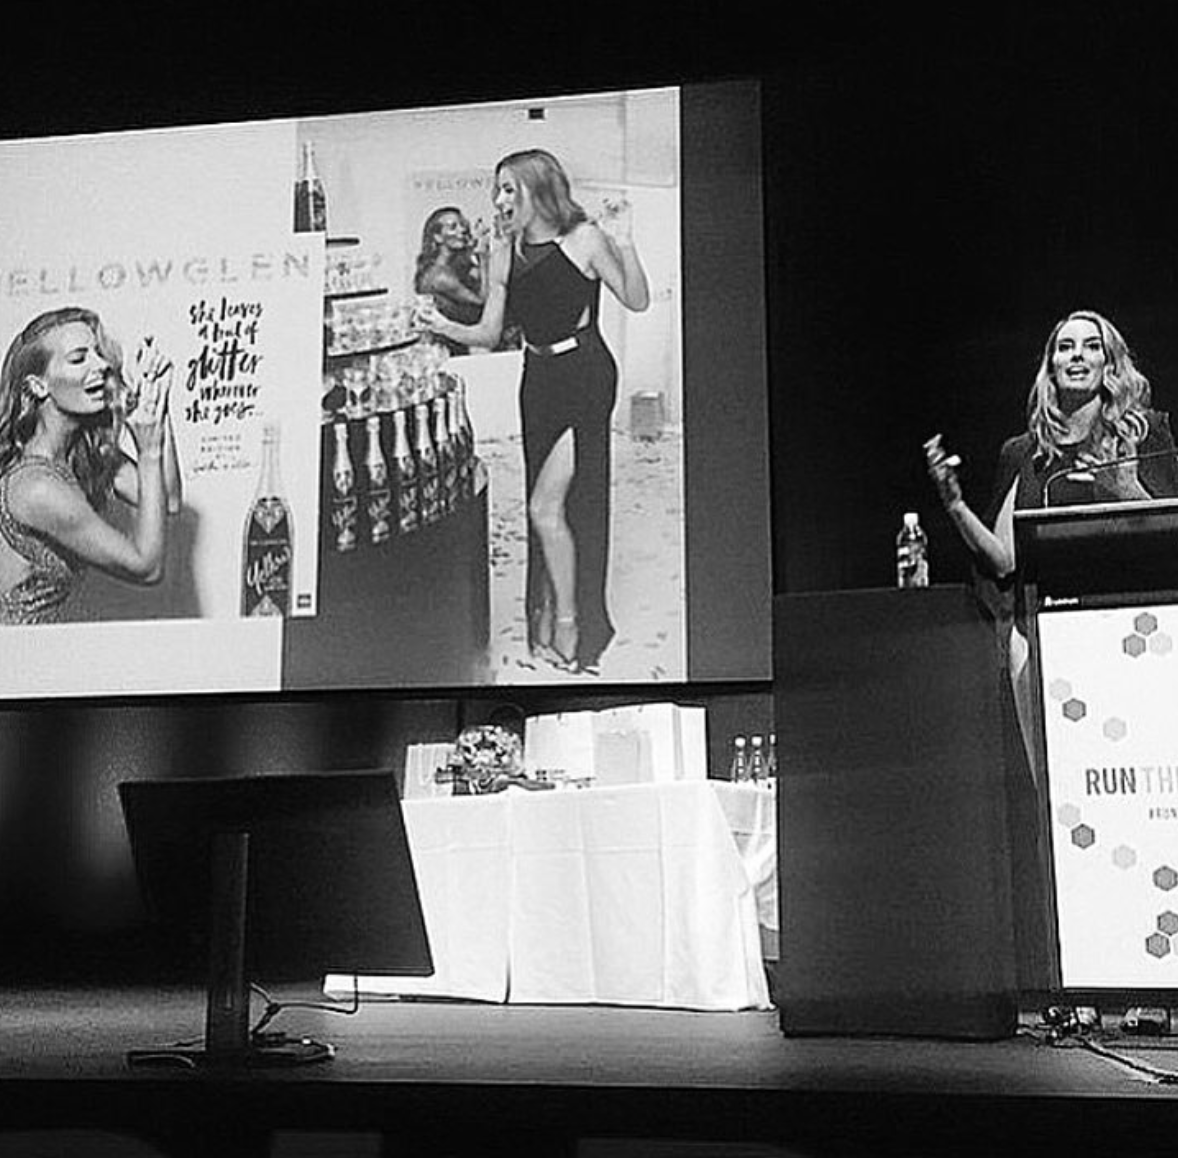 Samantha Wills Presenting as a keynote speaker at THE LEAGUE OF EXTRAORDINARY WOMEN, Brisbane Australia